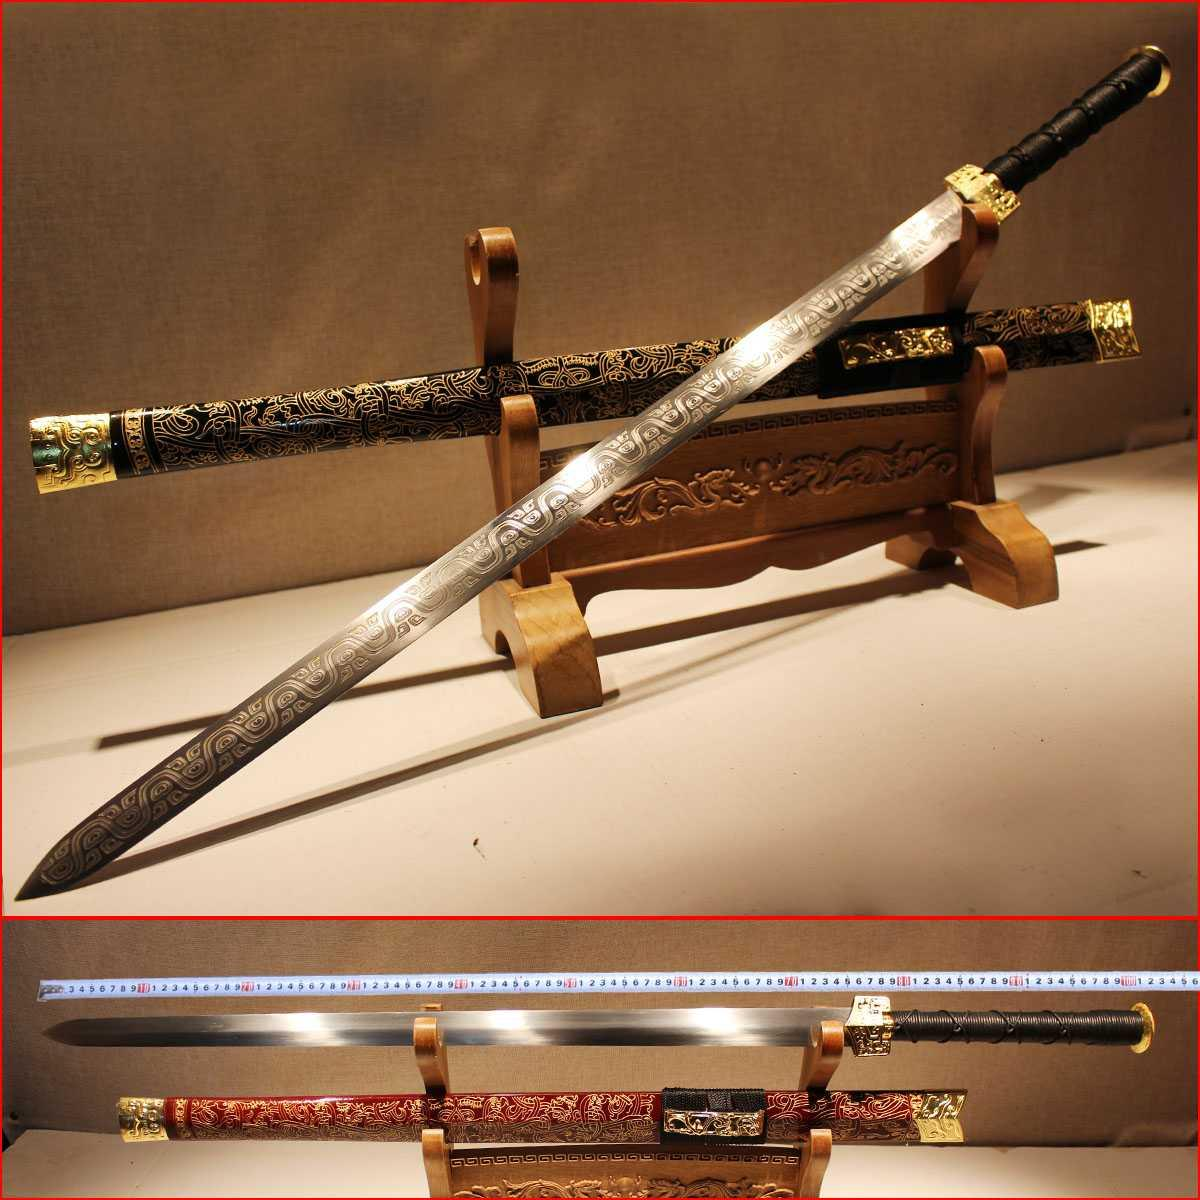 integrated steel sword tang dao longquan long TangJian Town curtilage sword pattern steel han jian long knife sword is not edged usually